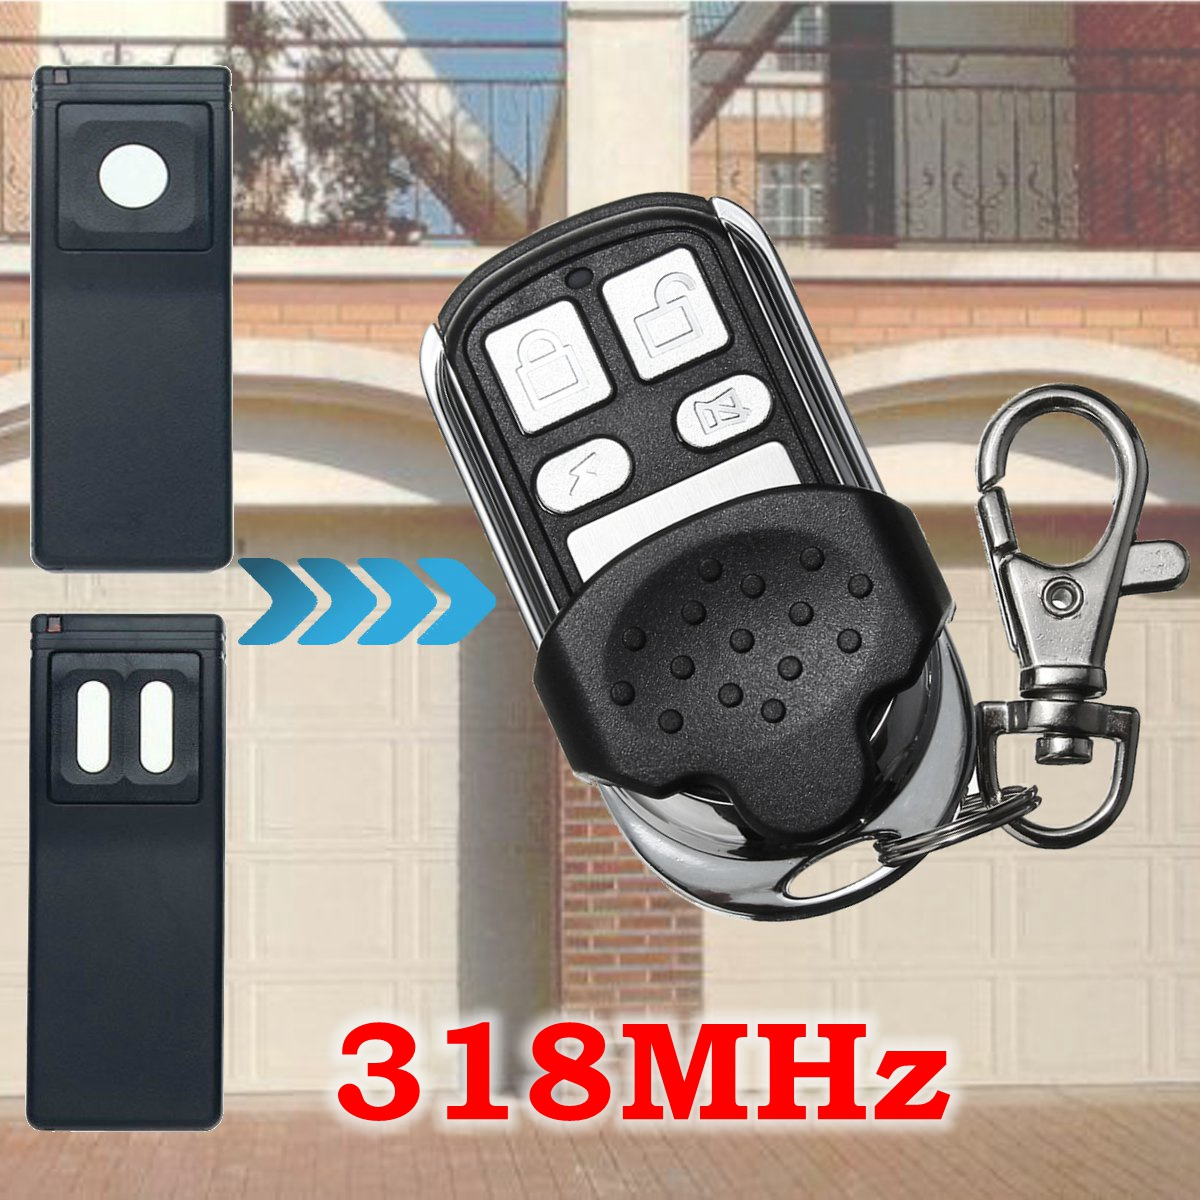 4 Button 318MHz Replacement Garage Door Remote Control for MCT-11 MCT-3 DNT00090